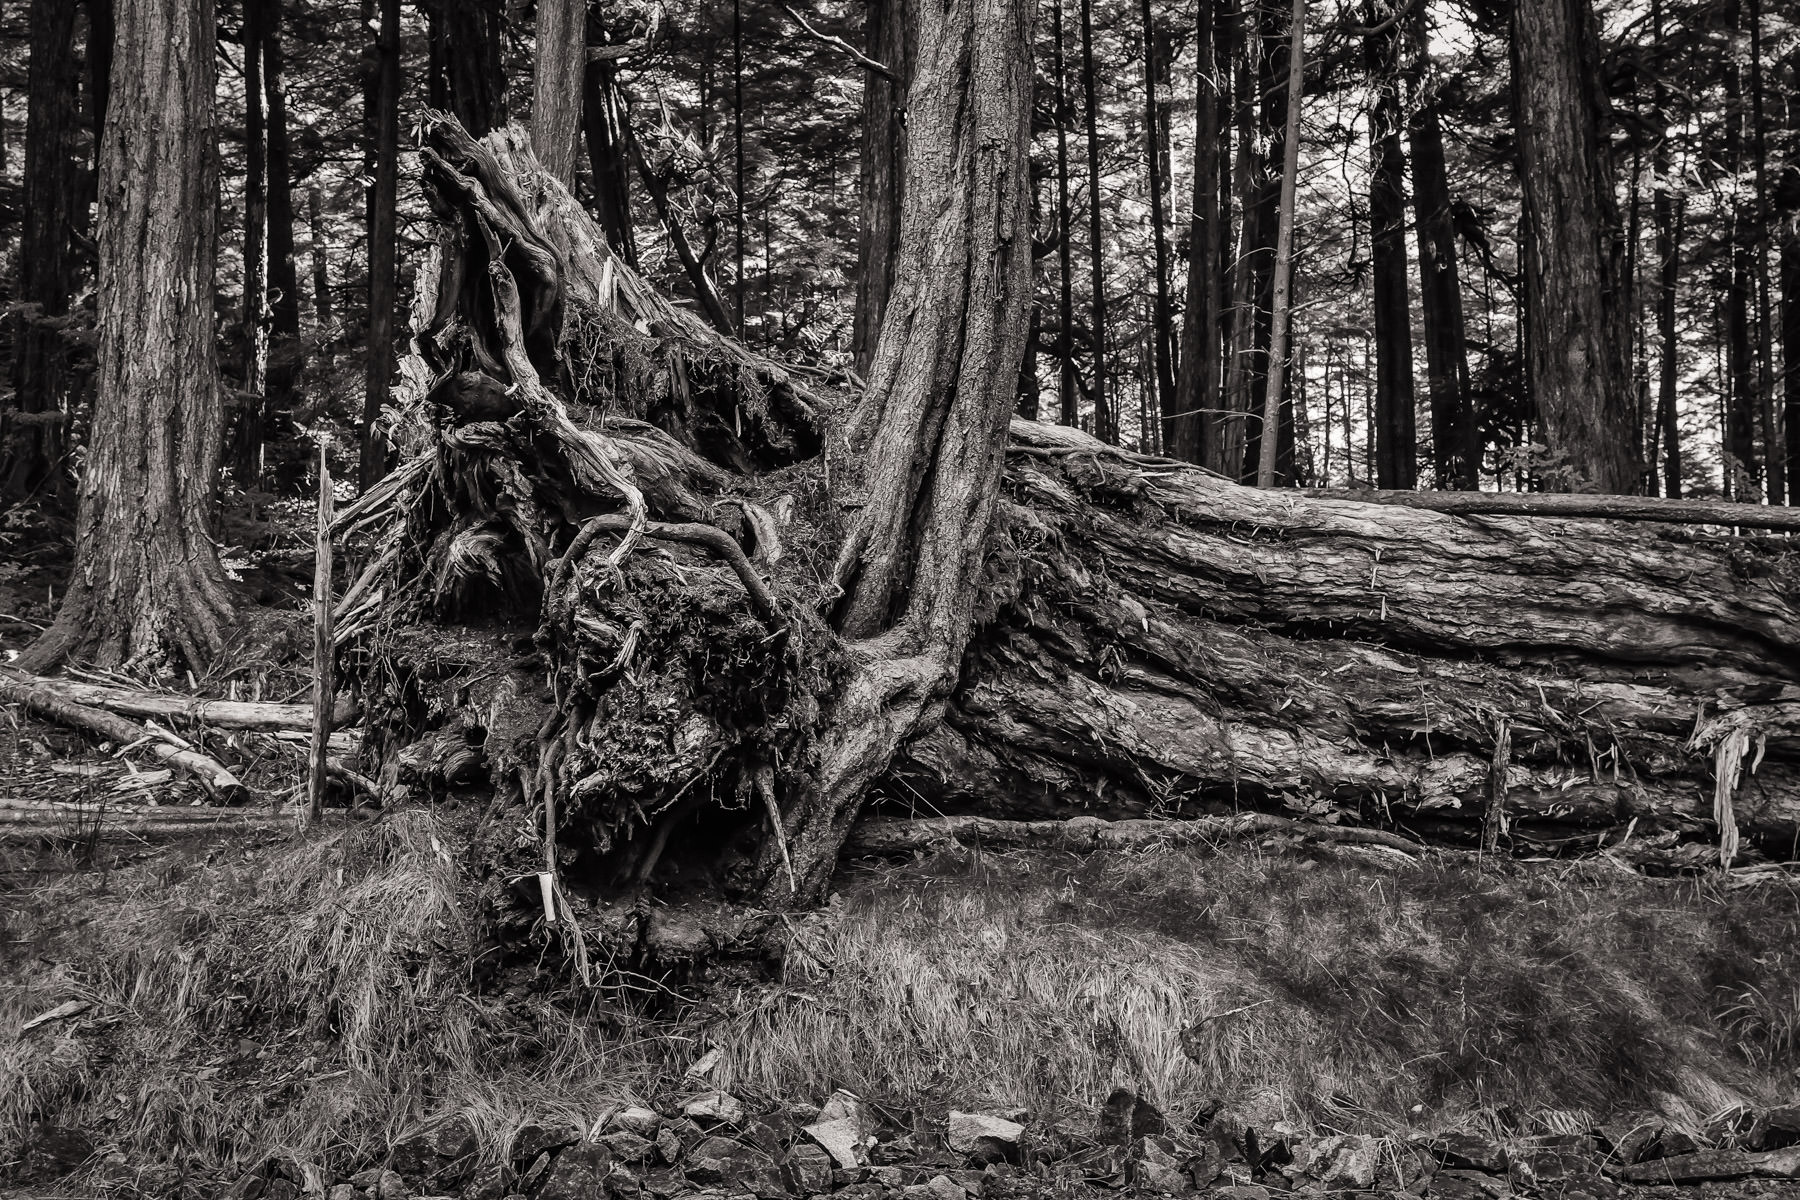 A fallen tree lies in the forest at Ketchikan, Alaska's Totem Bight State Historical Park.